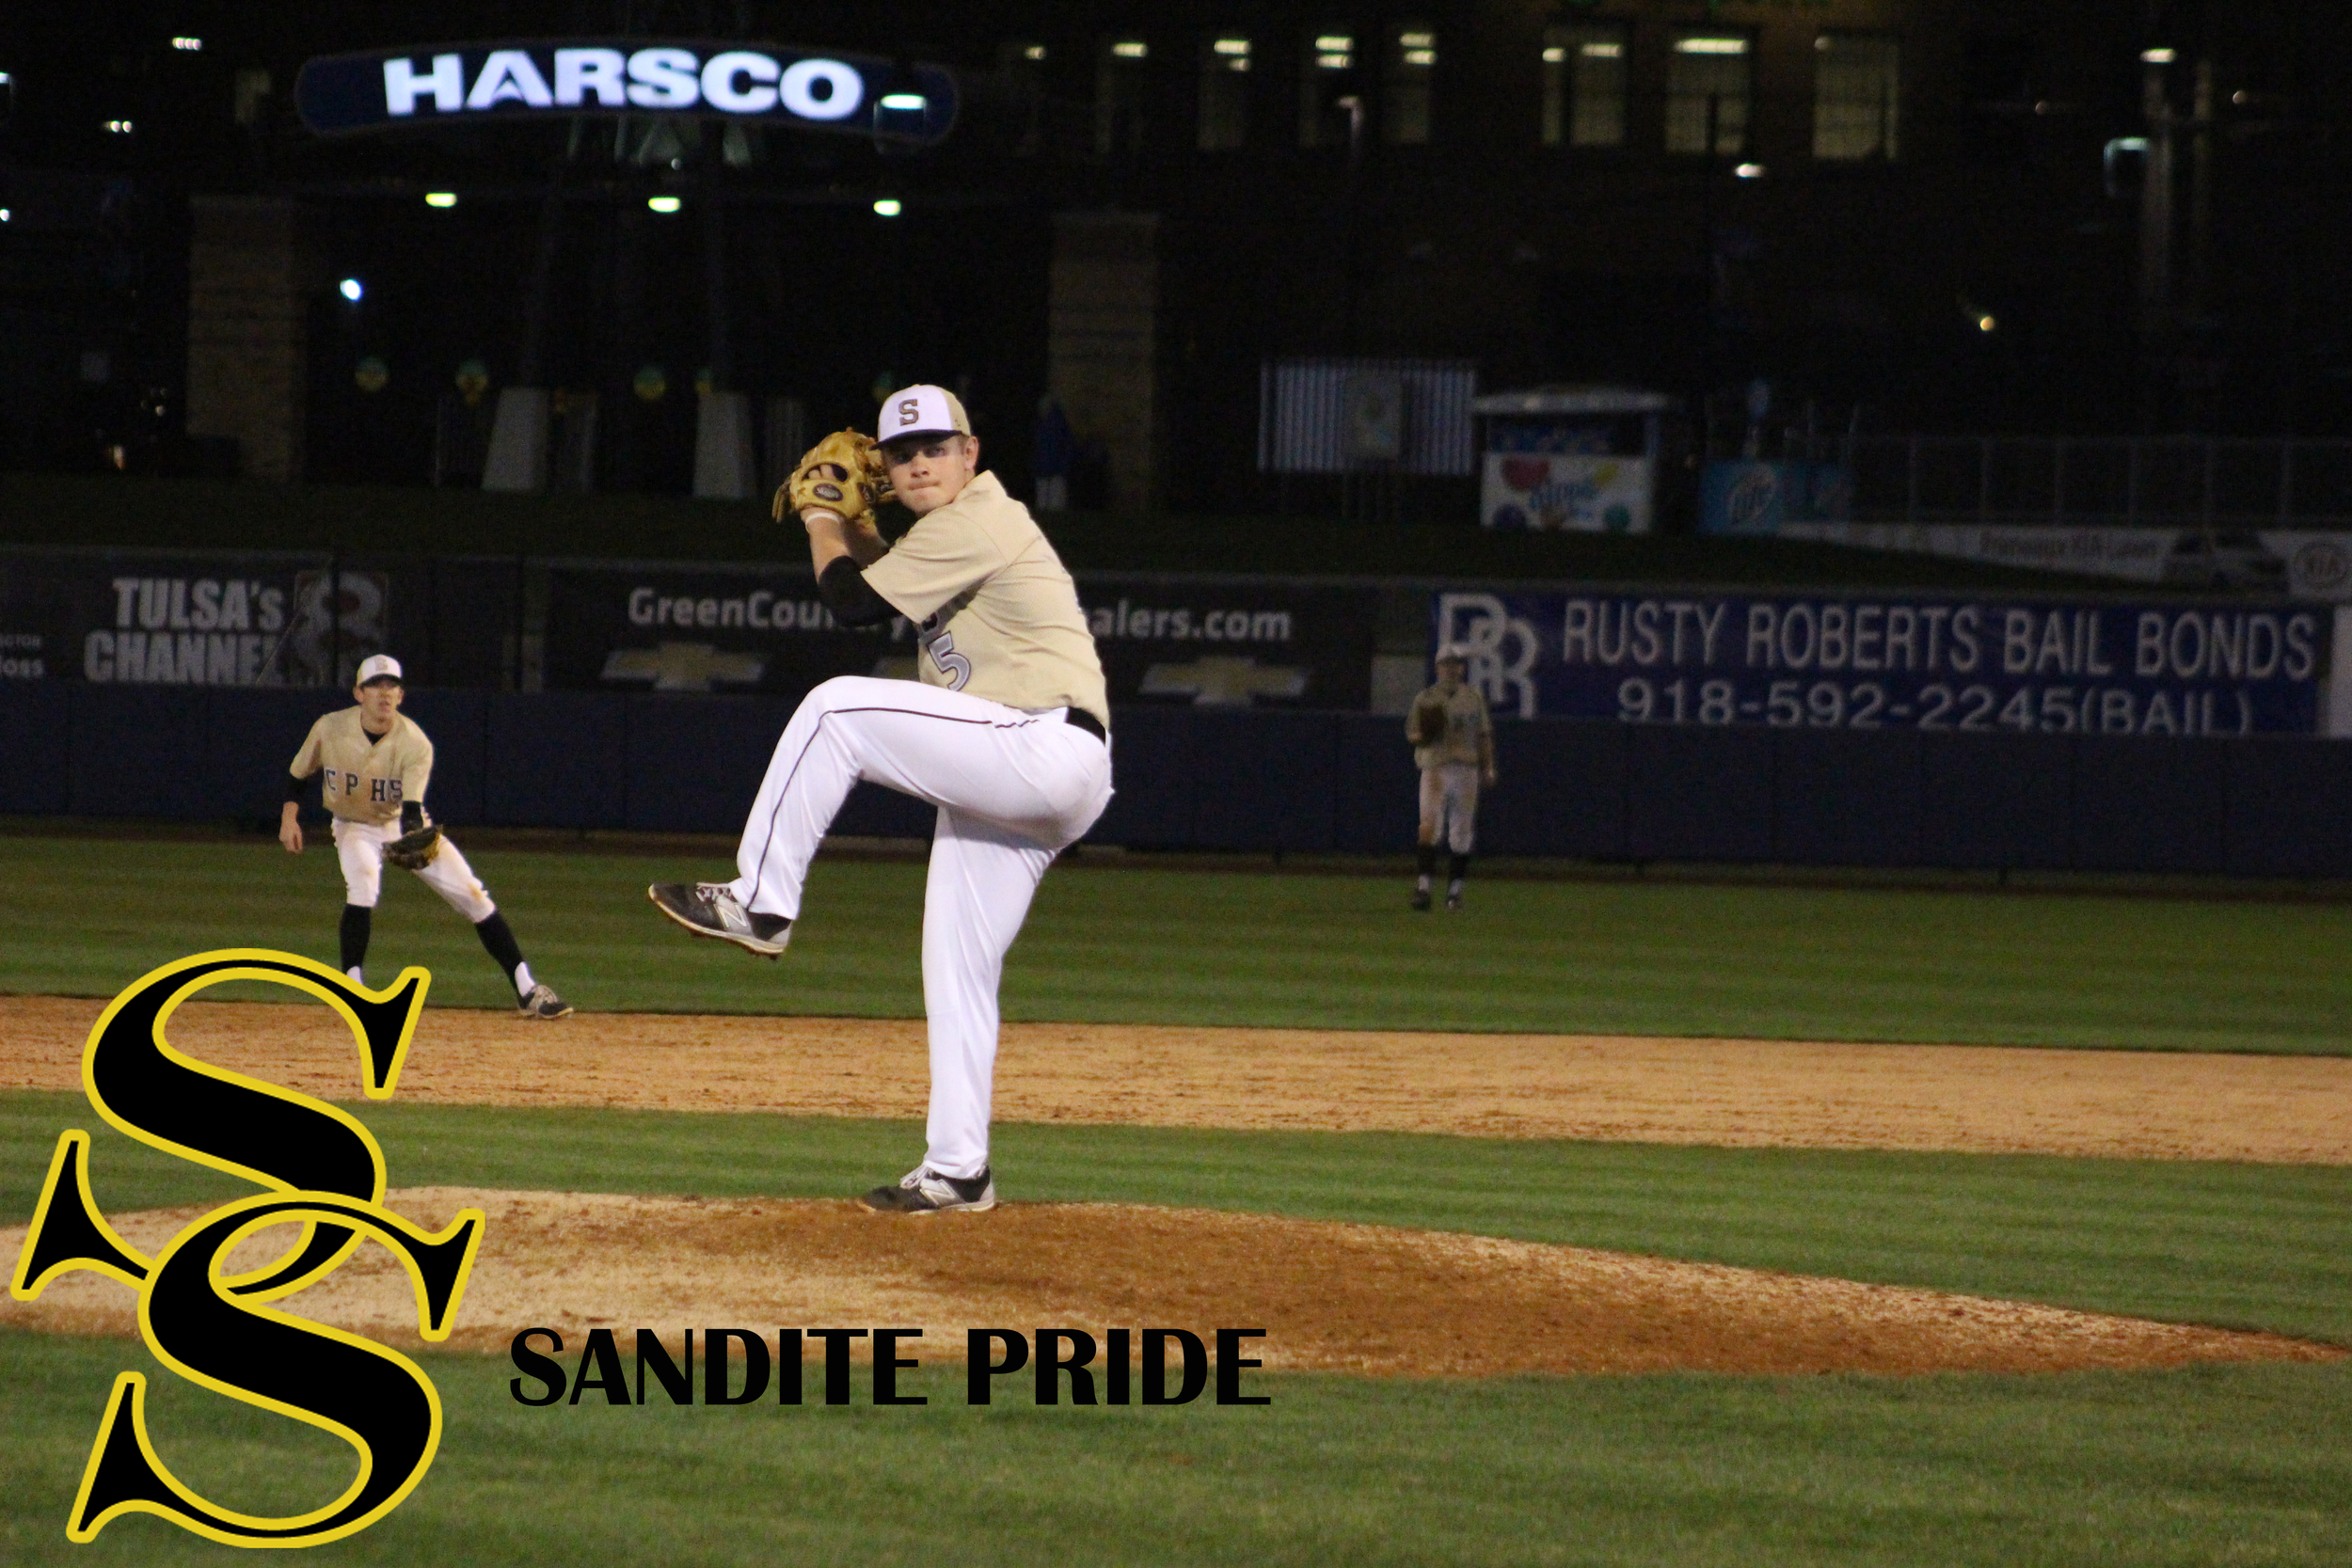 Jake Ward pitched 9 strikeouts in a win over Booker T Washington Monday night.